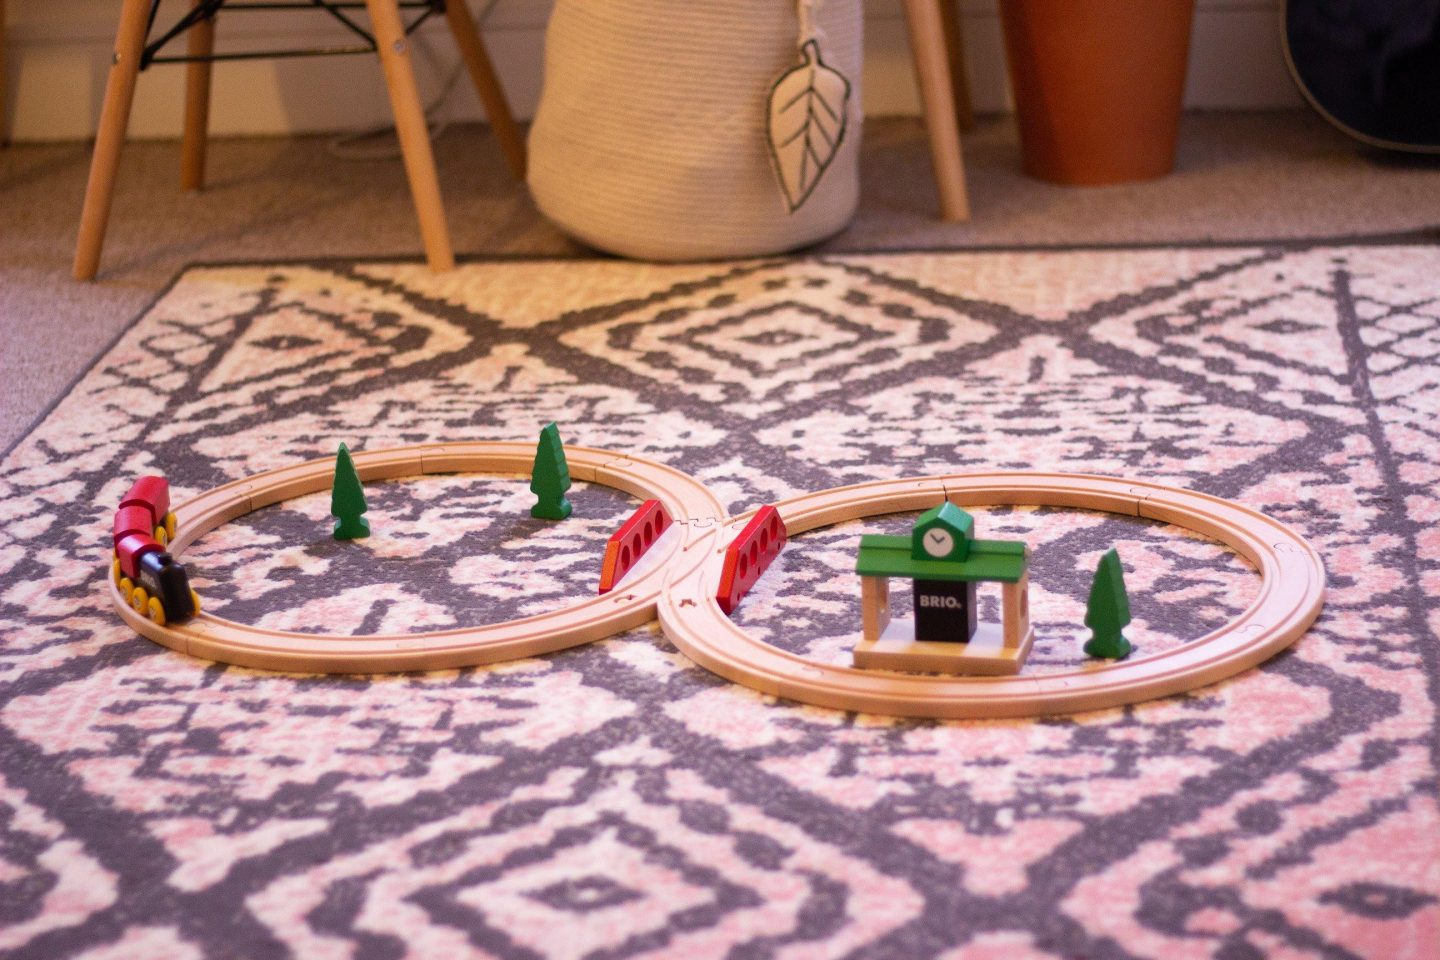 Children's train set on a pink and black aztec rug